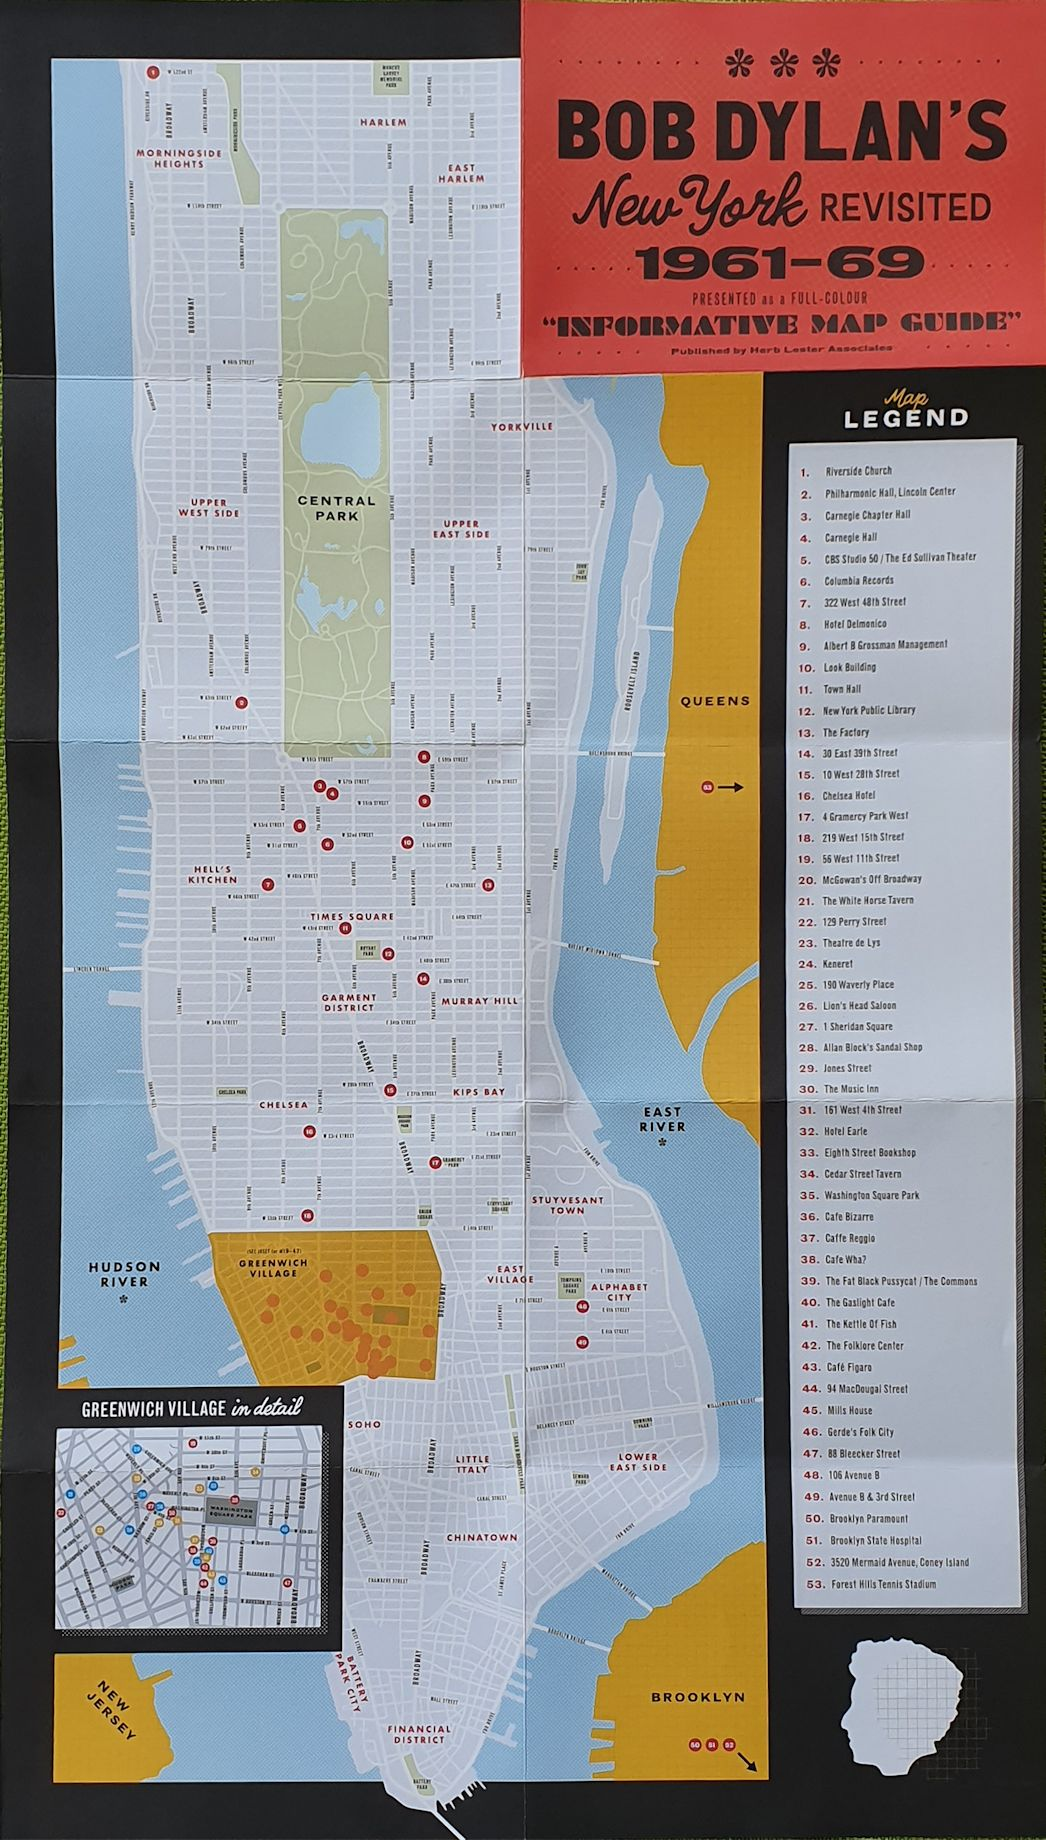 bob dylan's New York Revisited 1961-69 map